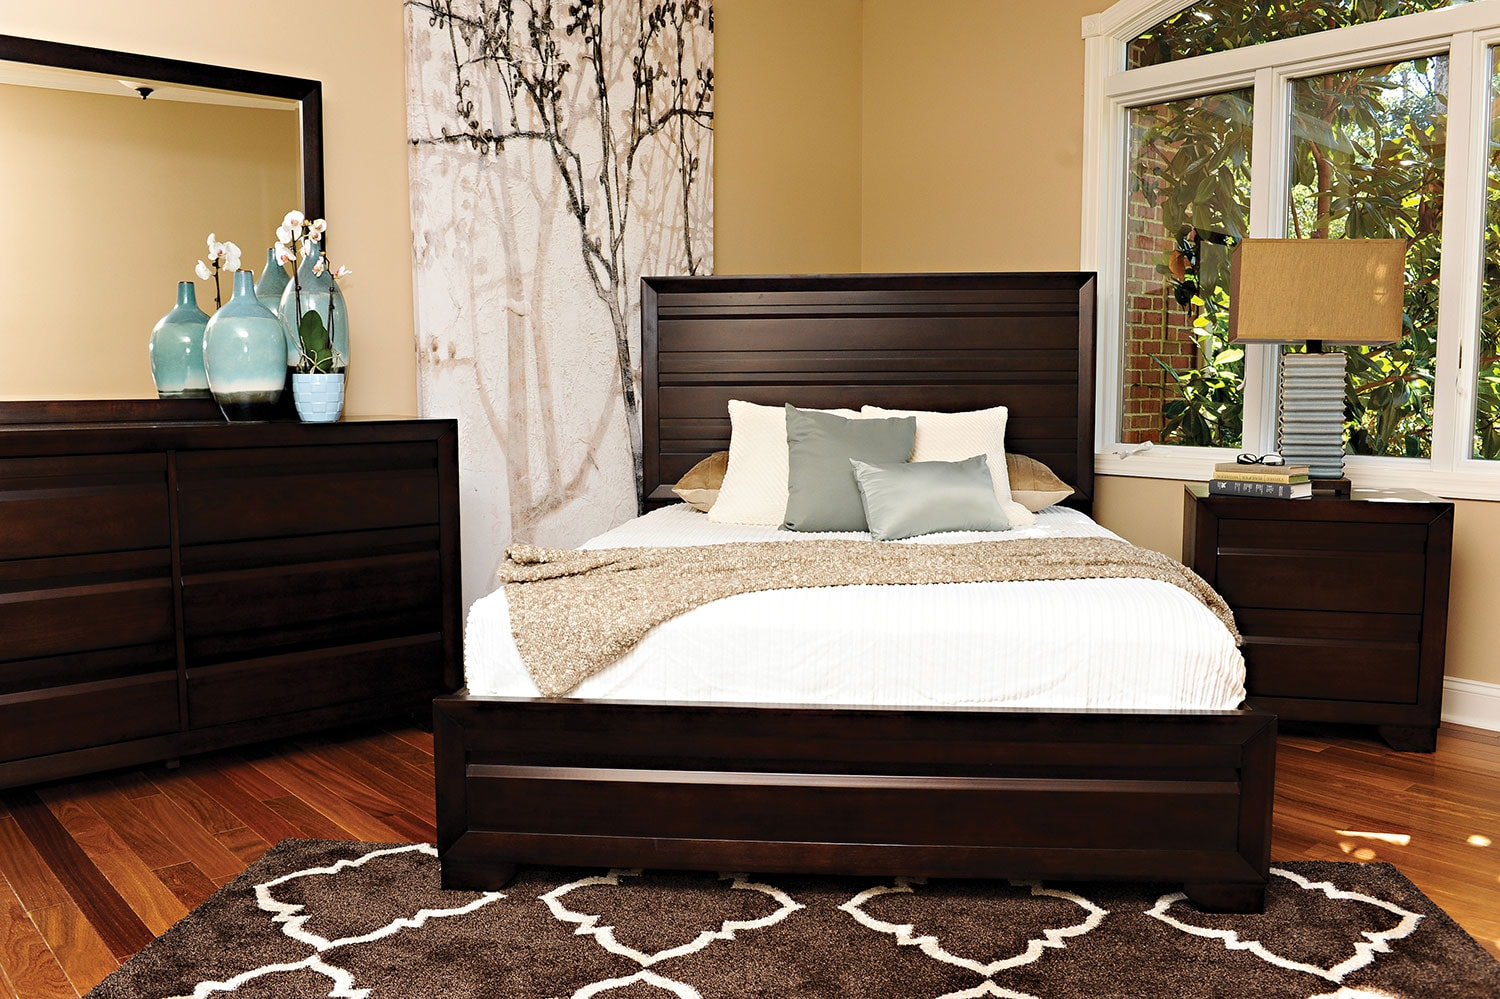 bedroom levin furniture 12080 | 469575 fit inside 7c320 320 composite to center center 7c320 320 background color white